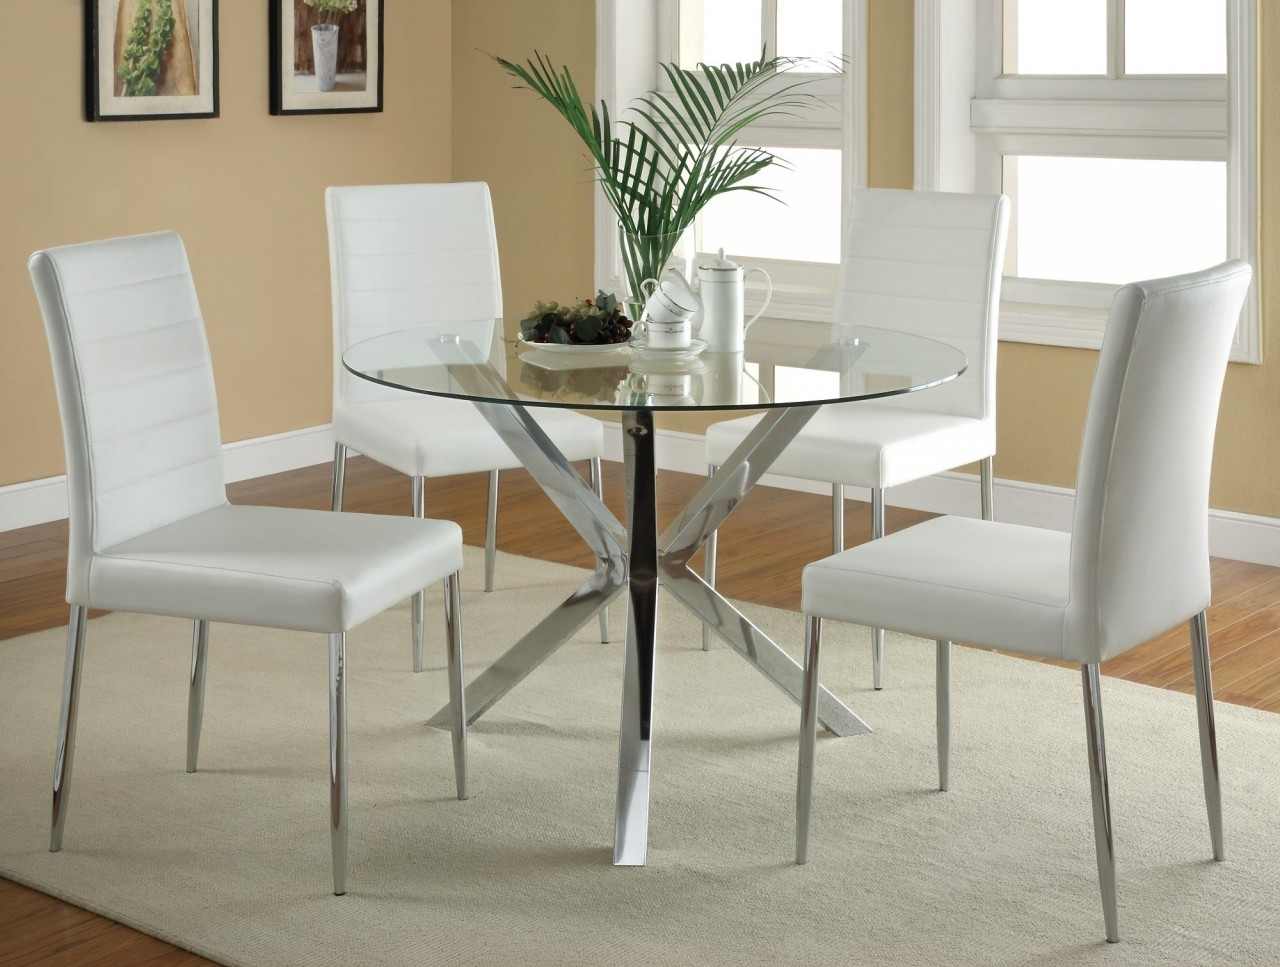 Preferred Modern Round Glass Dining Table With Chrome Polished Metal Leg As Regarding Glass Dining Tables And Leather Chairs (Gallery 13 of 25)